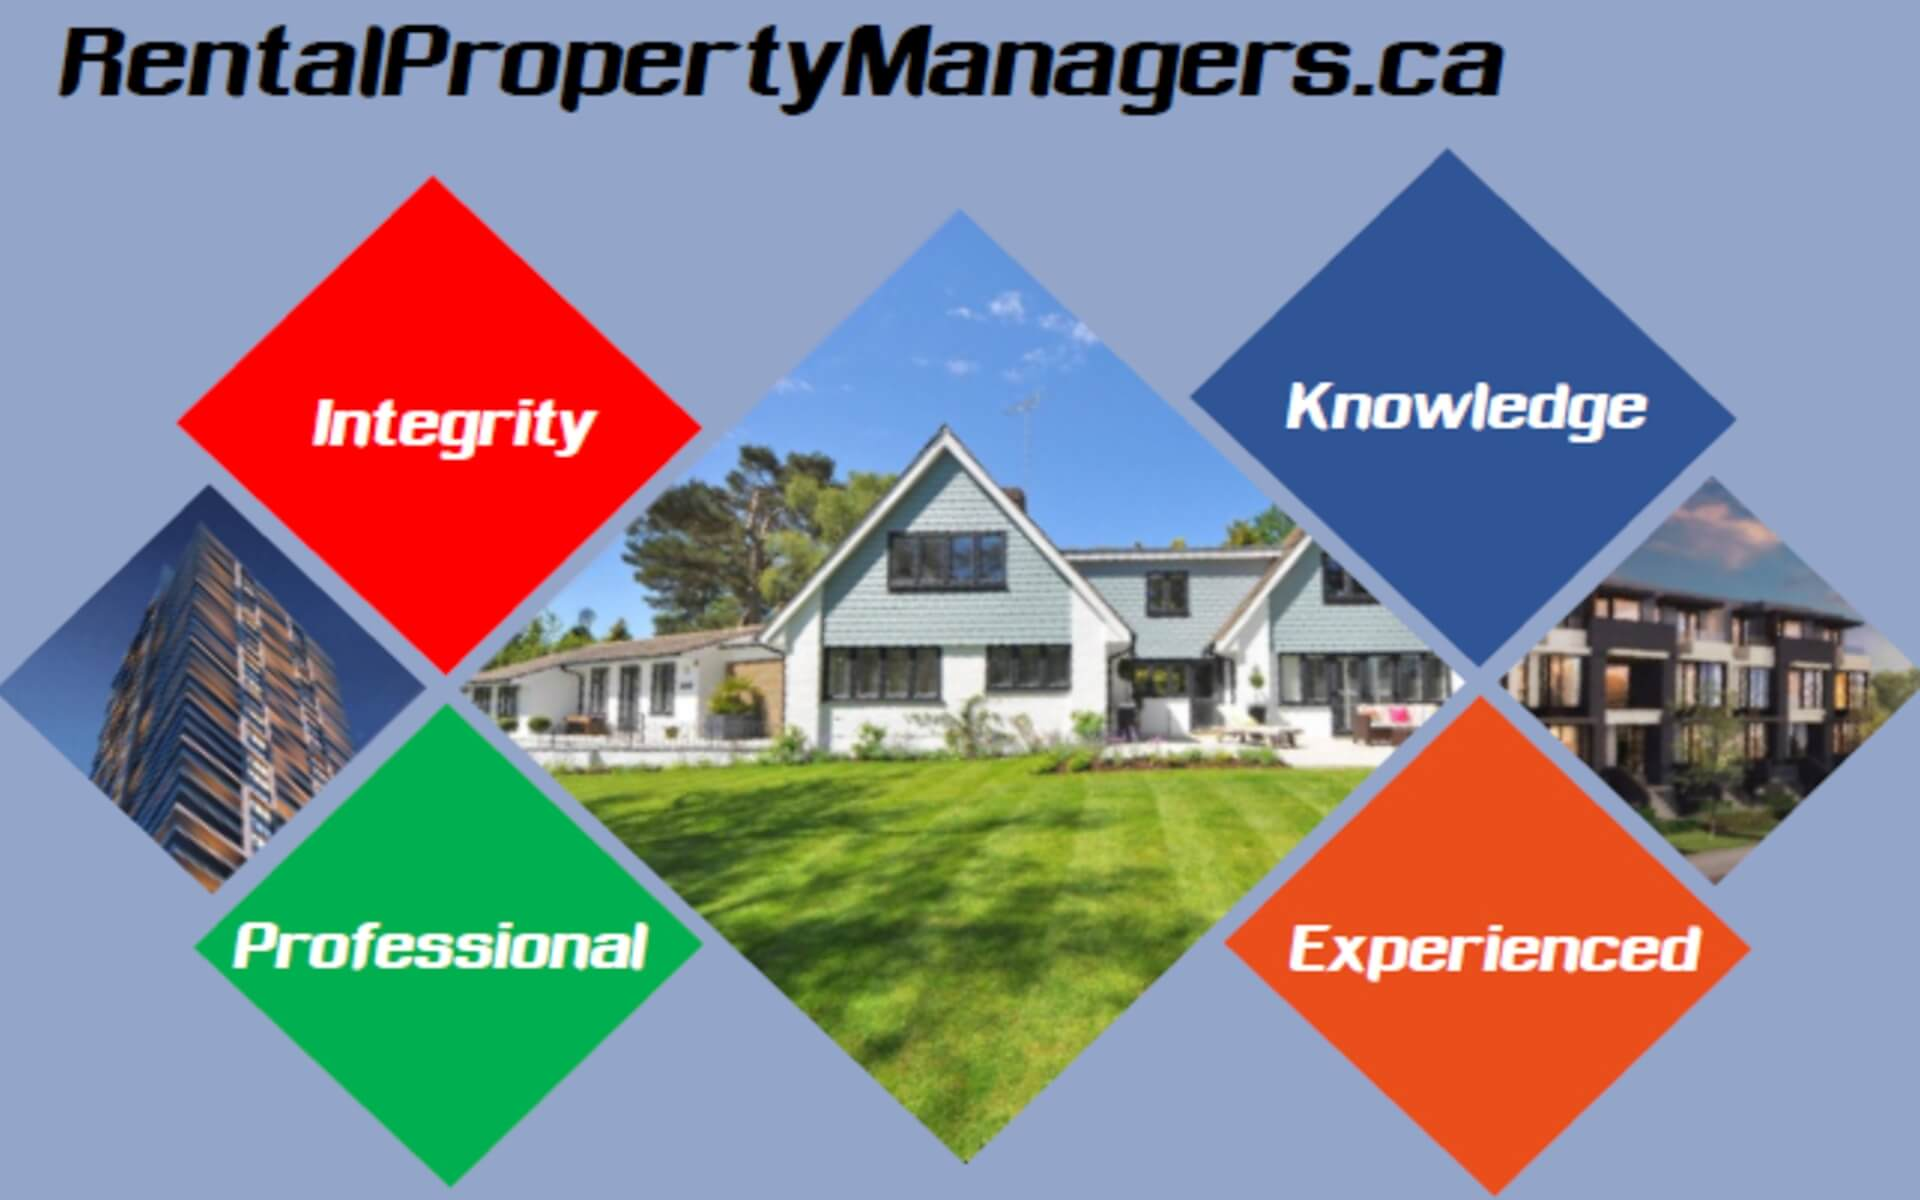 How do landlord or tenant decide on a Rental property manager?